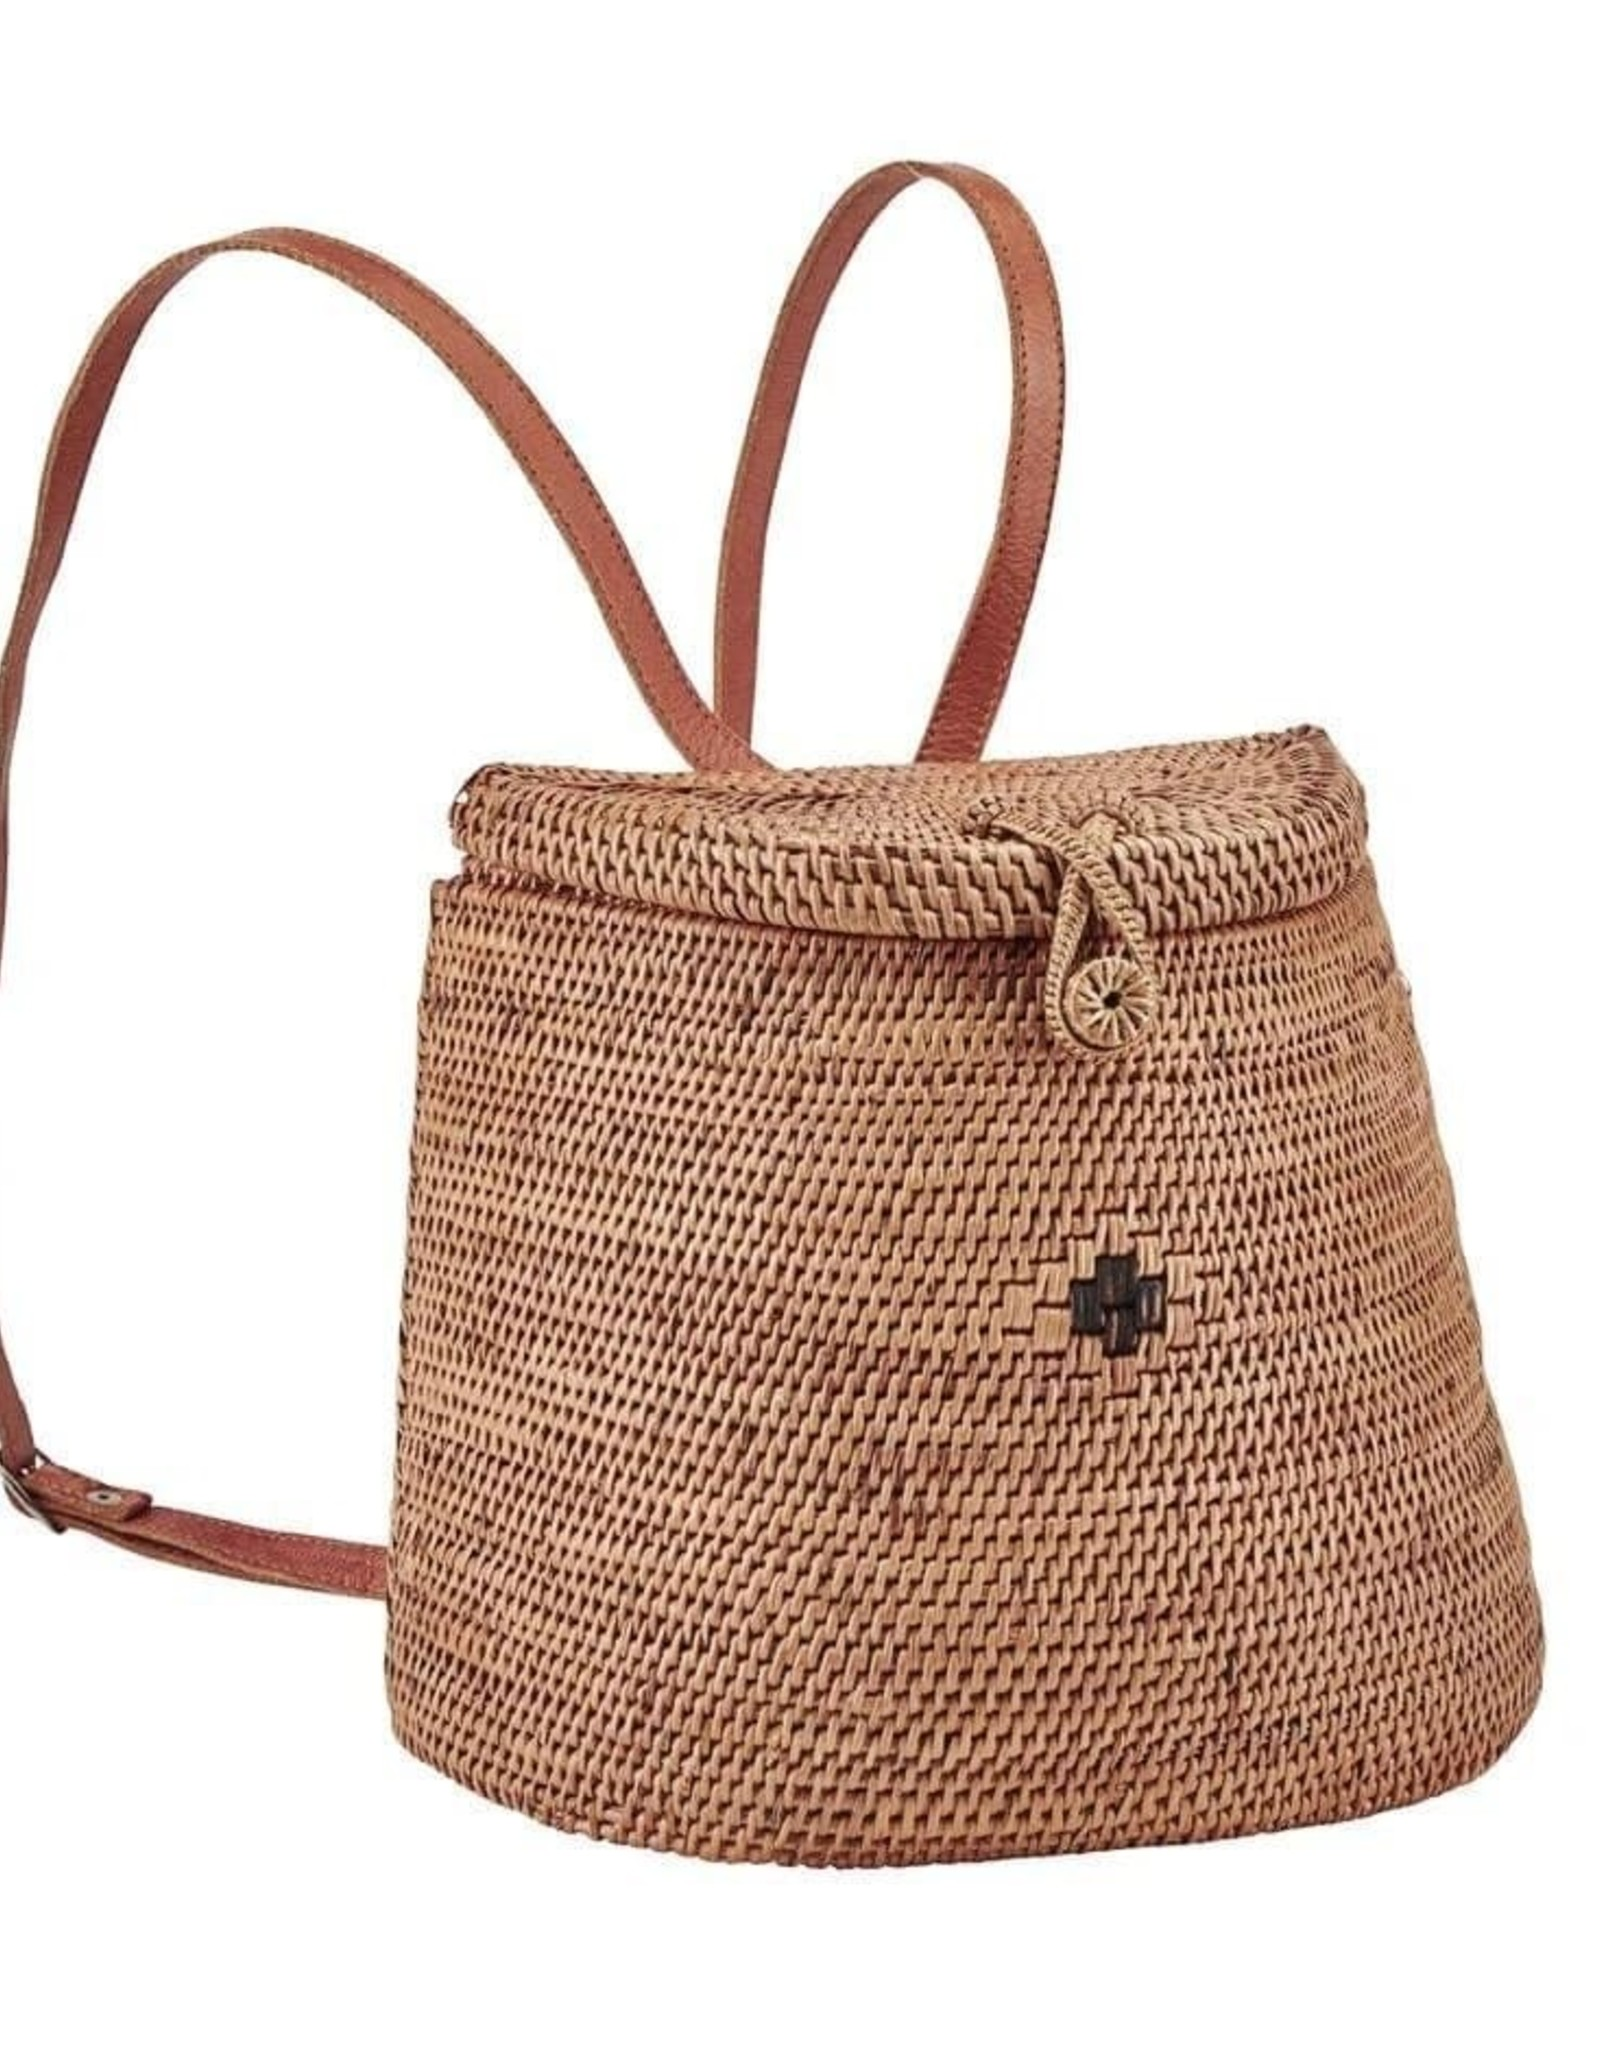 SAN DIEGO HAT Handwoven Reed Basket Backpack with Leather Straps